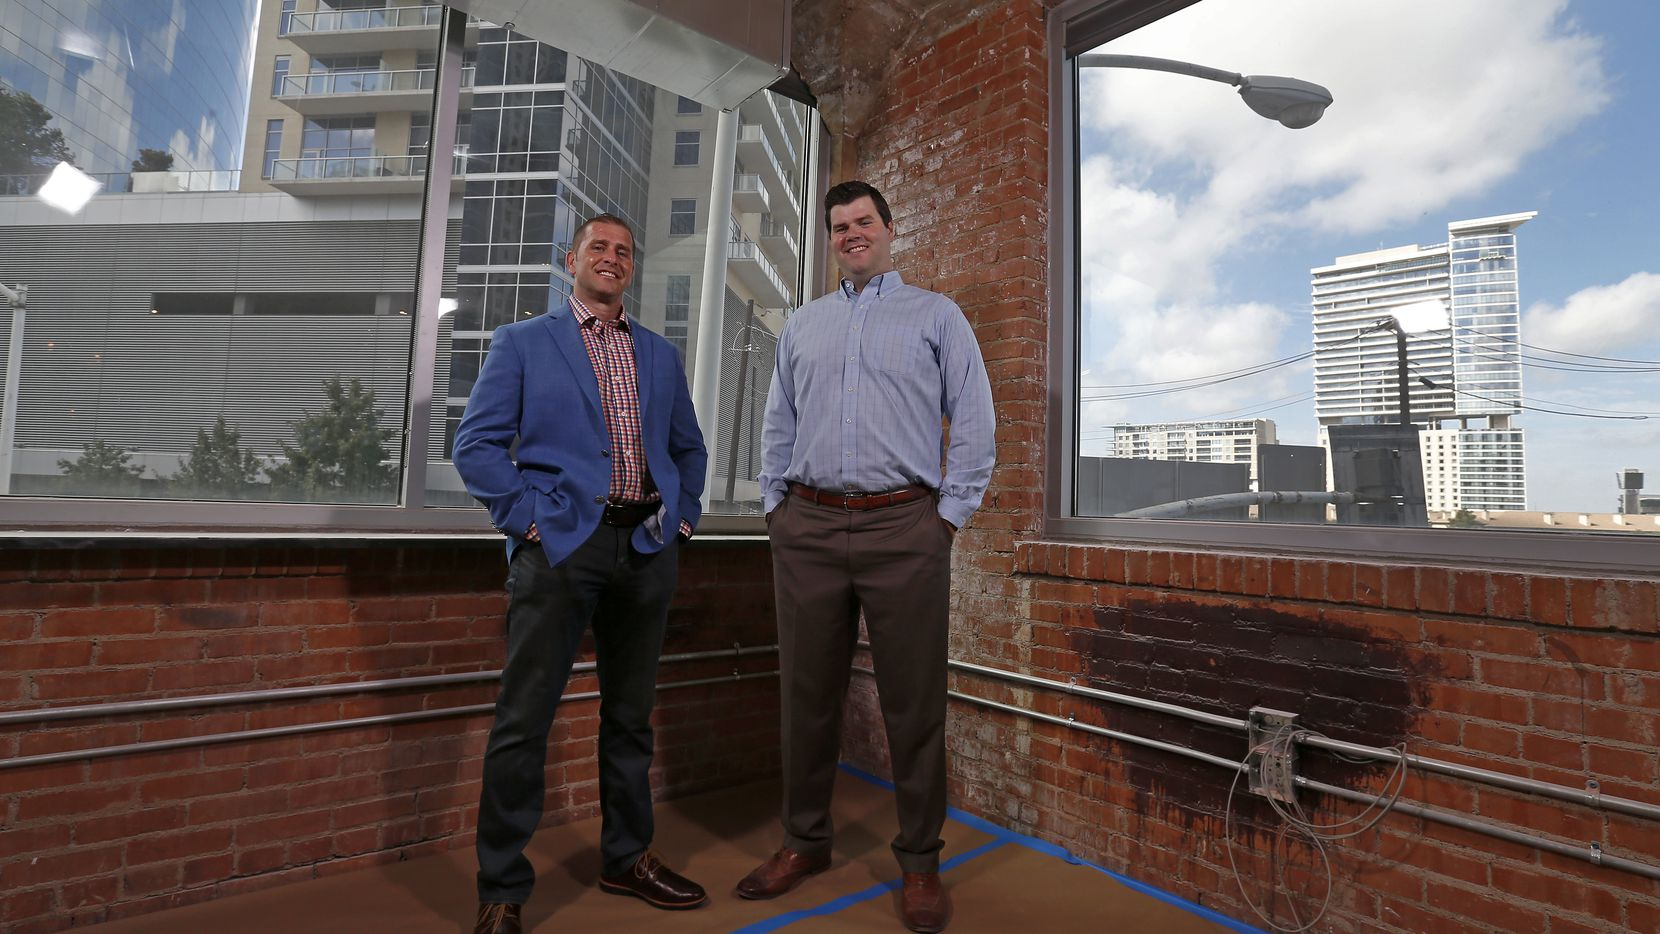 Josh McLeod (left), vice president of Regus, and Brian Bigham, area manager of Regus, pose for a photograph in front of the original wall of the historic furniture company building at the new shared office facility at 1919 McKinney Avenue in Dallas.